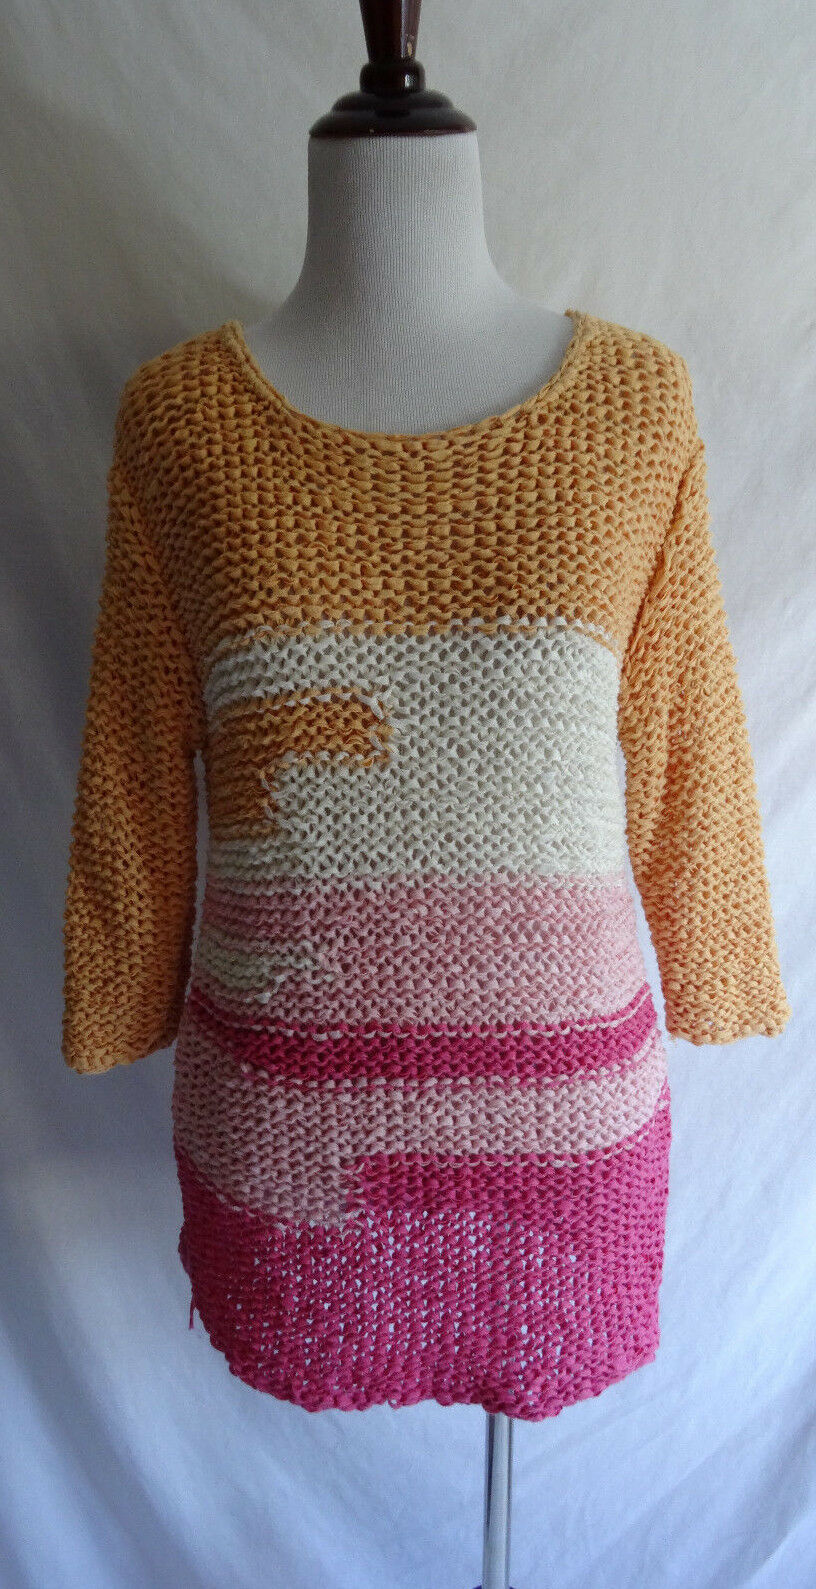 J. Jill Small Pink orange White Open Knit Tape Yarn Woven Beach Sweater Cover Up